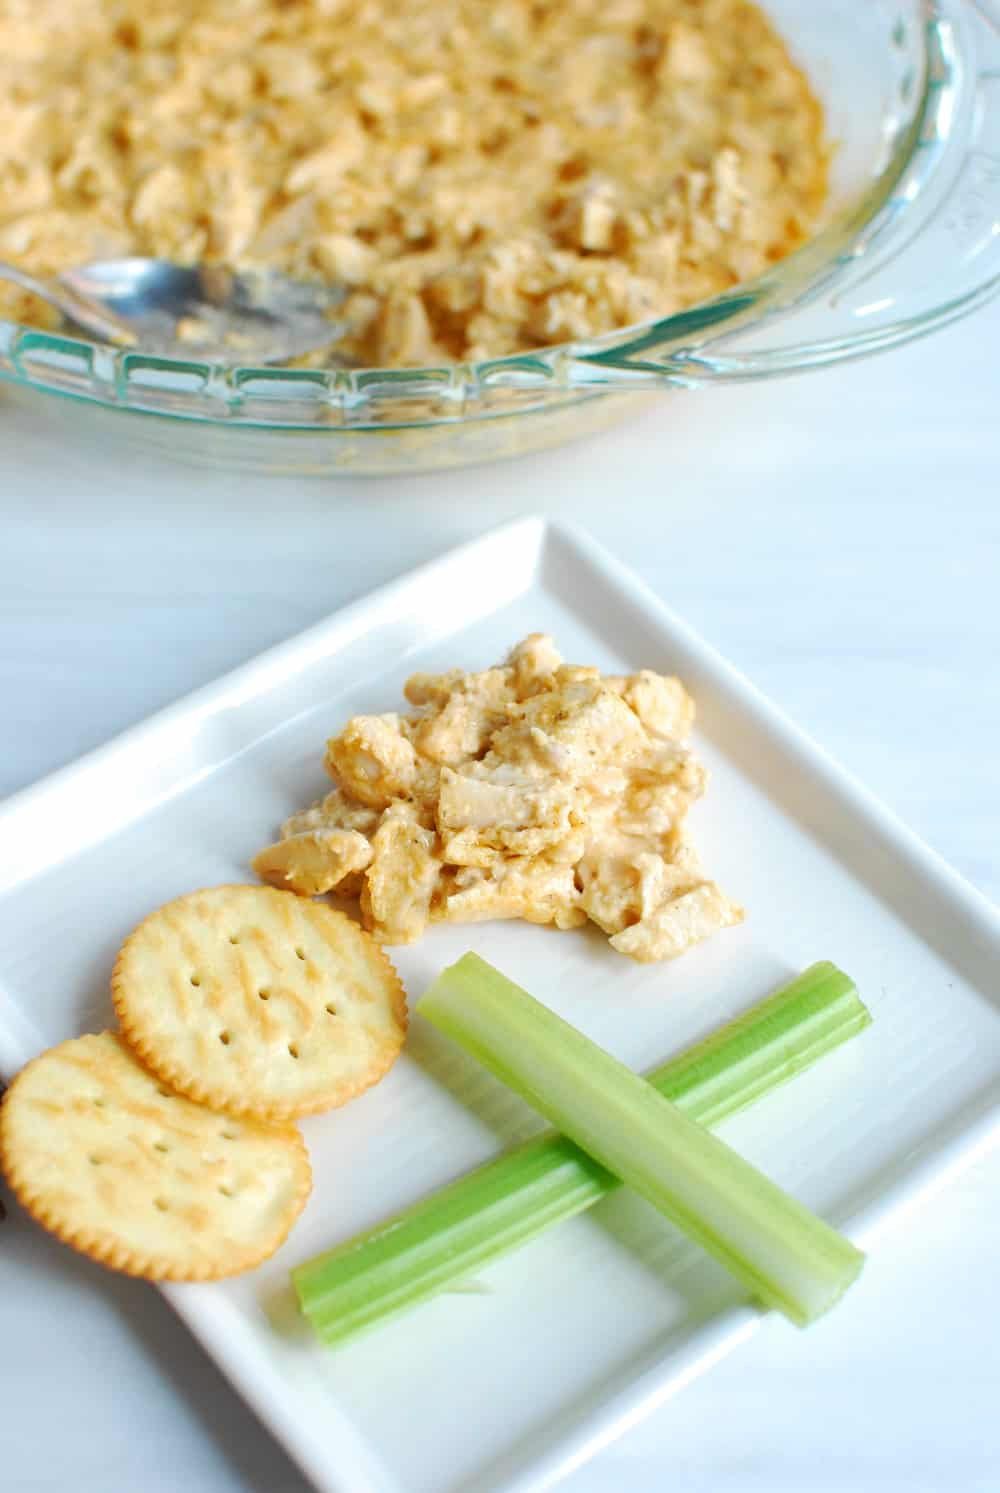 Celery, crackers, and dairy free buffalo dip